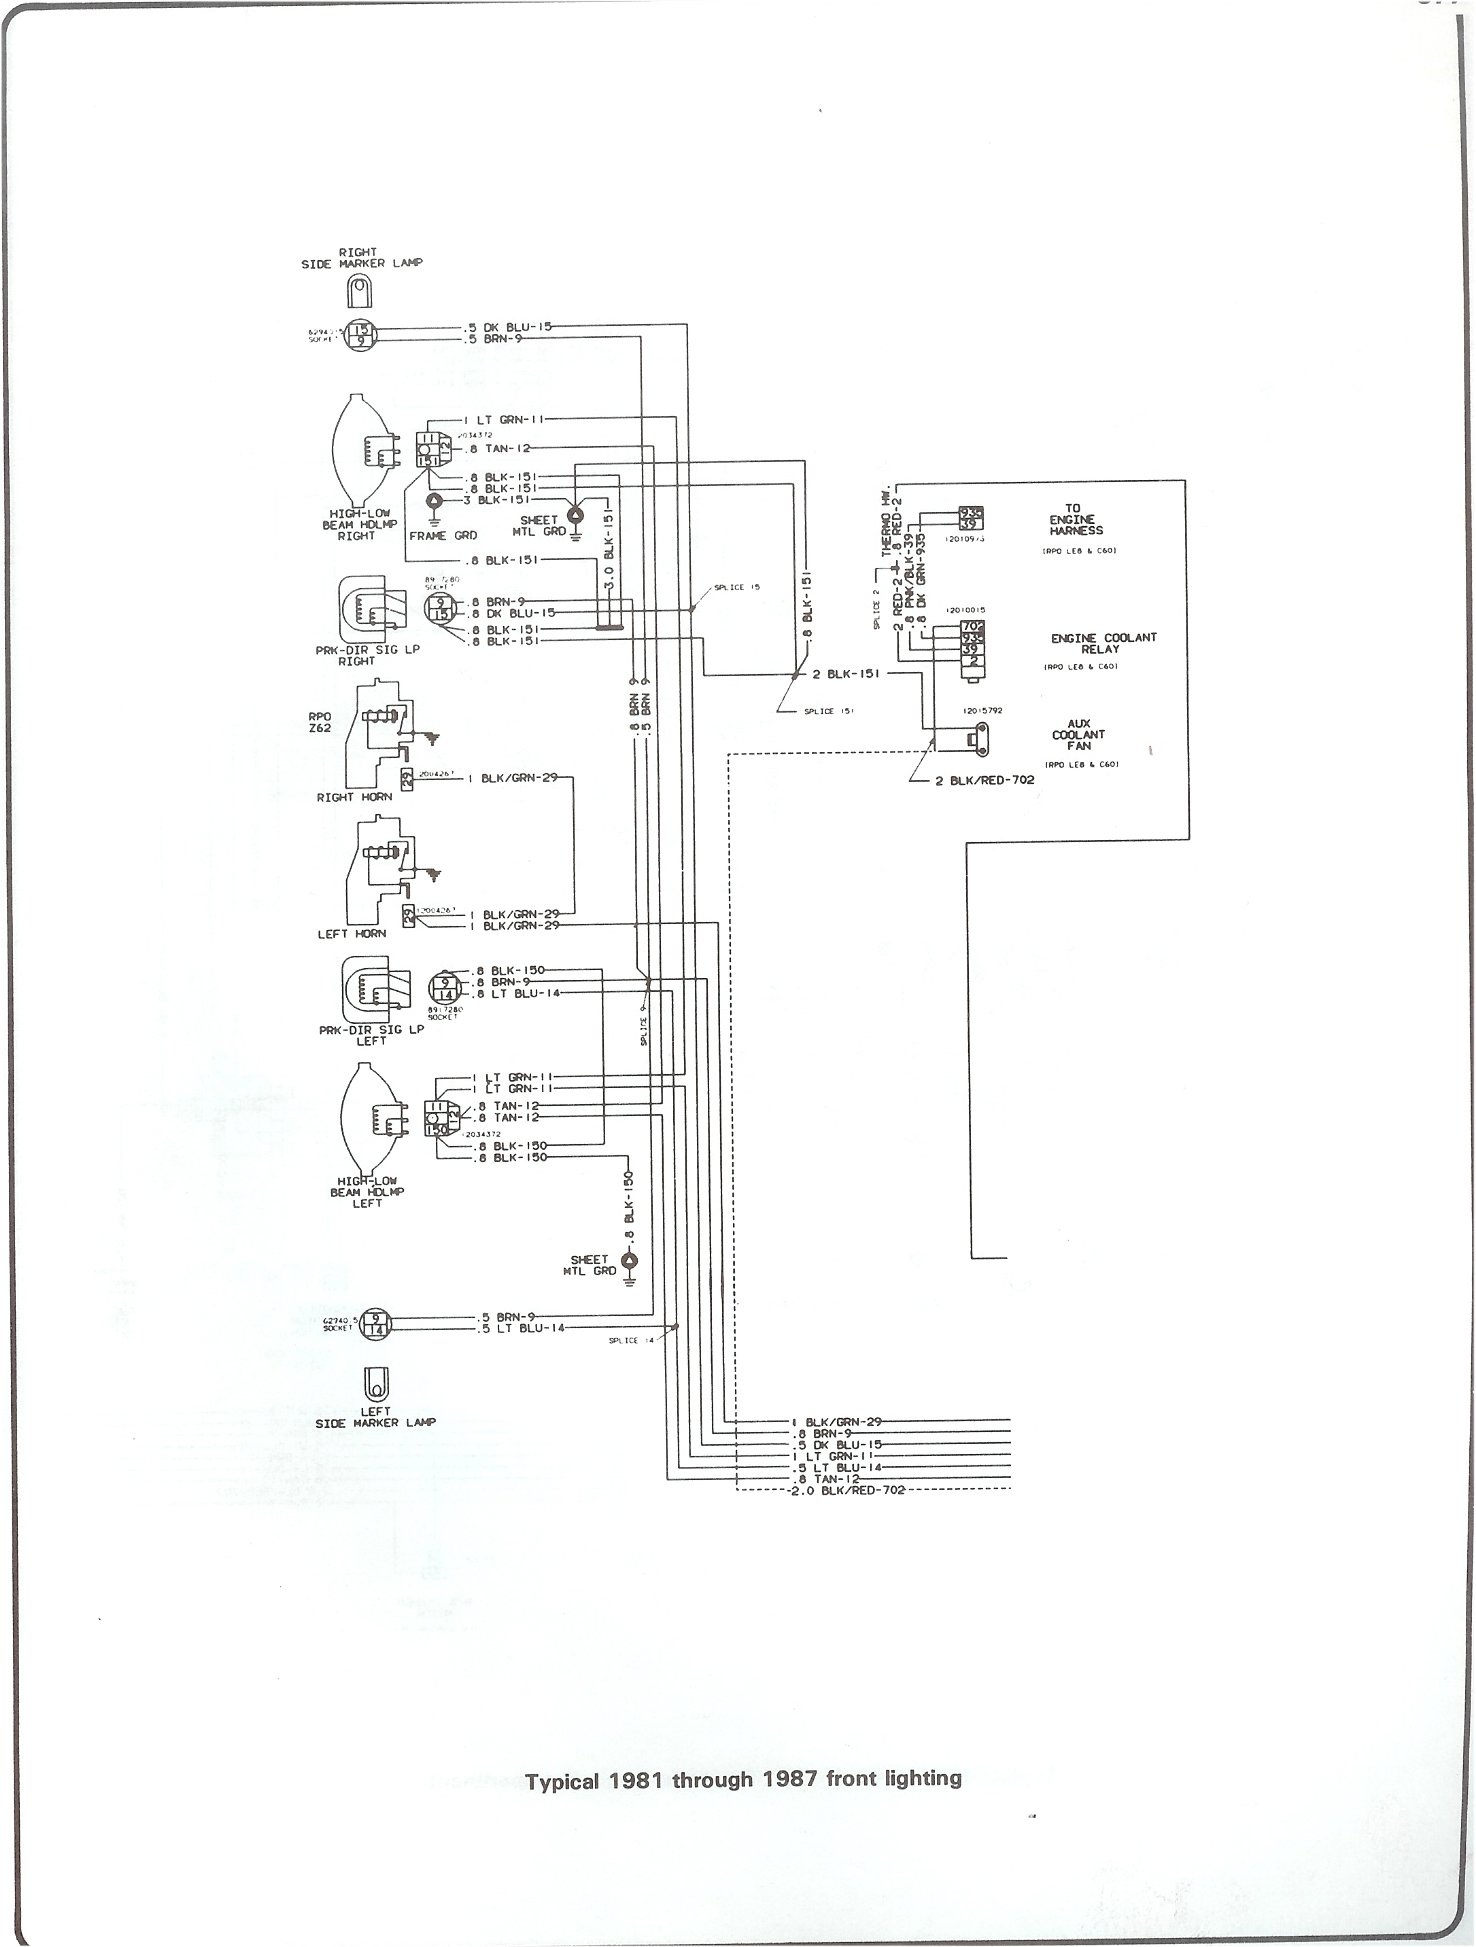 1984 Chevy G30 Wiring Diagram Truck Radio Toyota Pickup Complete 73 87 Diagrams Rh Forum 87chevytrucks Com